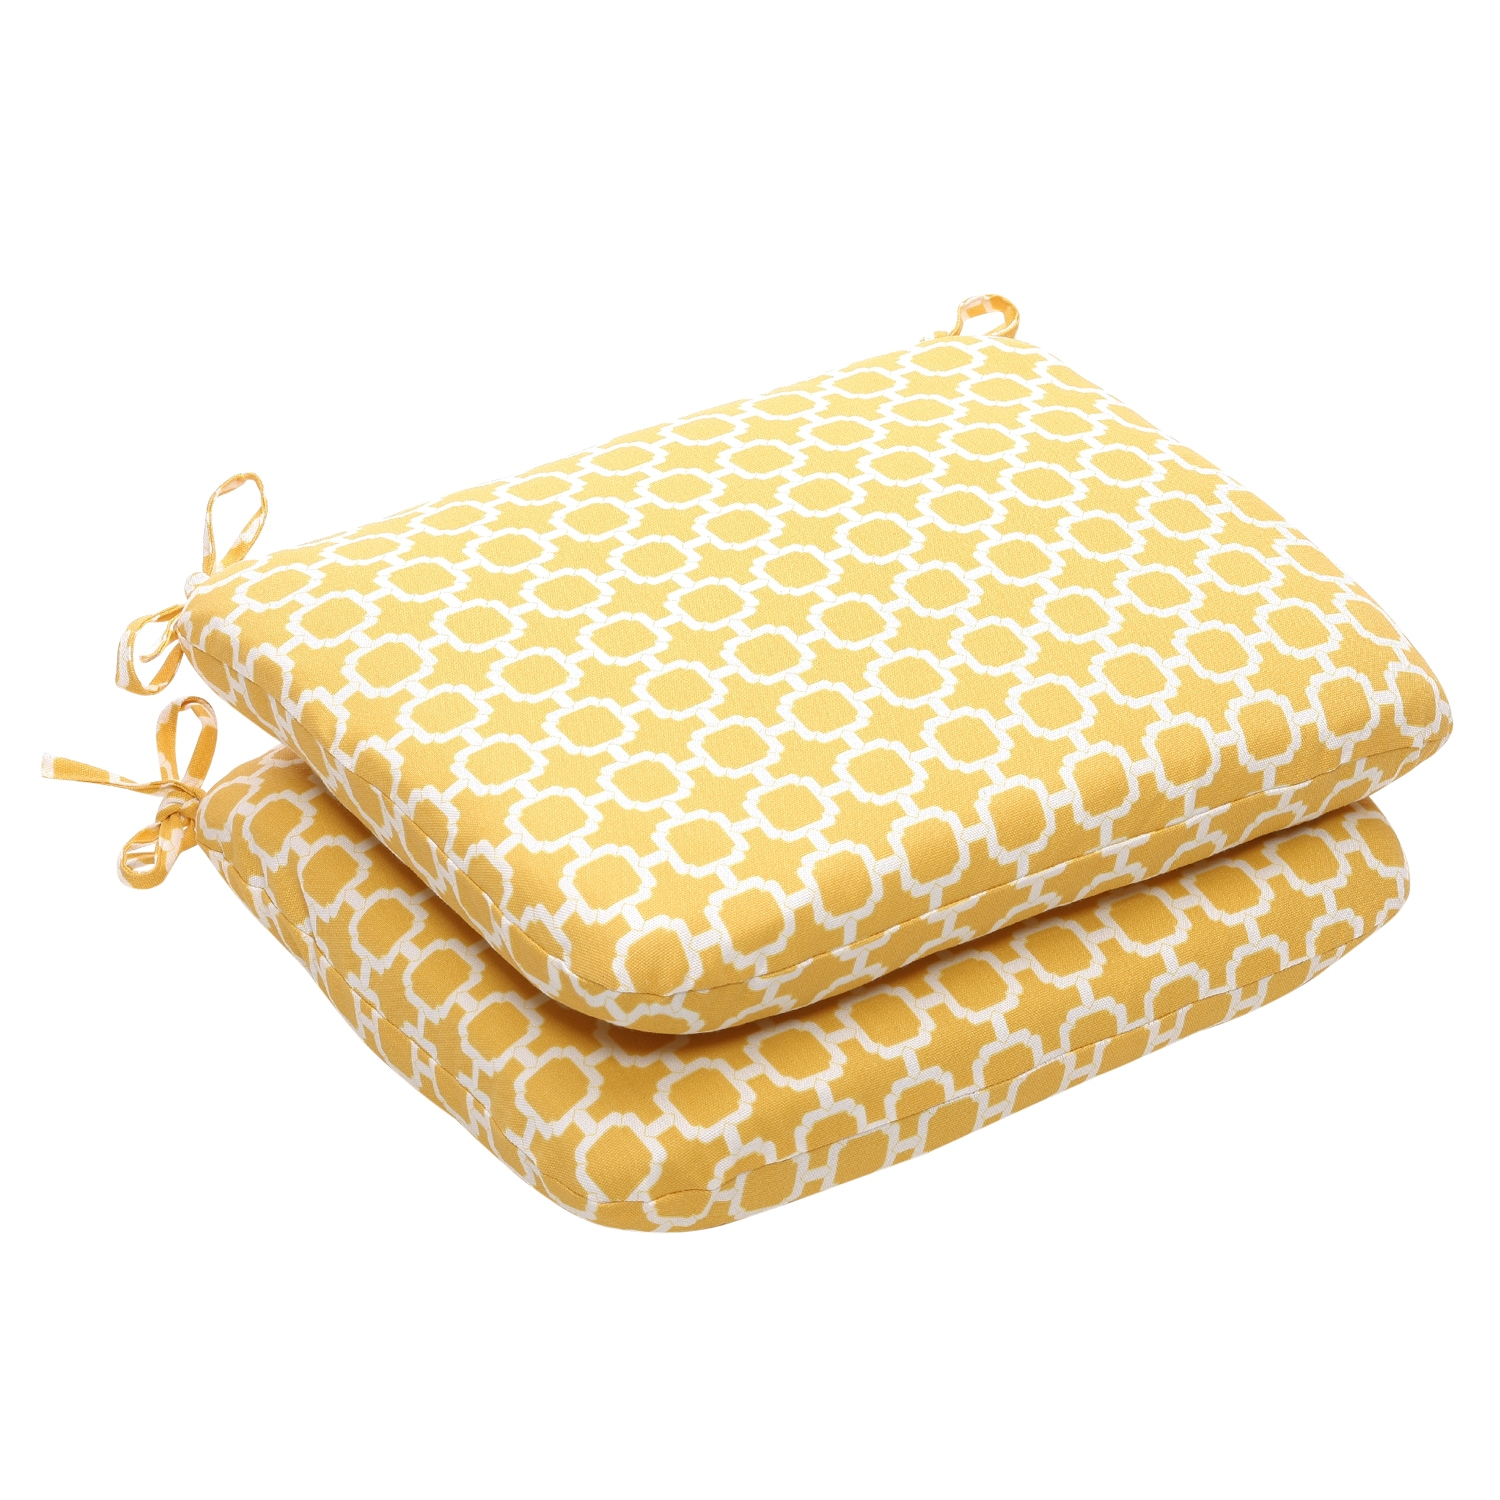 Patio Furniture Cushions White: Outdoor Yellow And White Geometric Rounded Seat Cushion